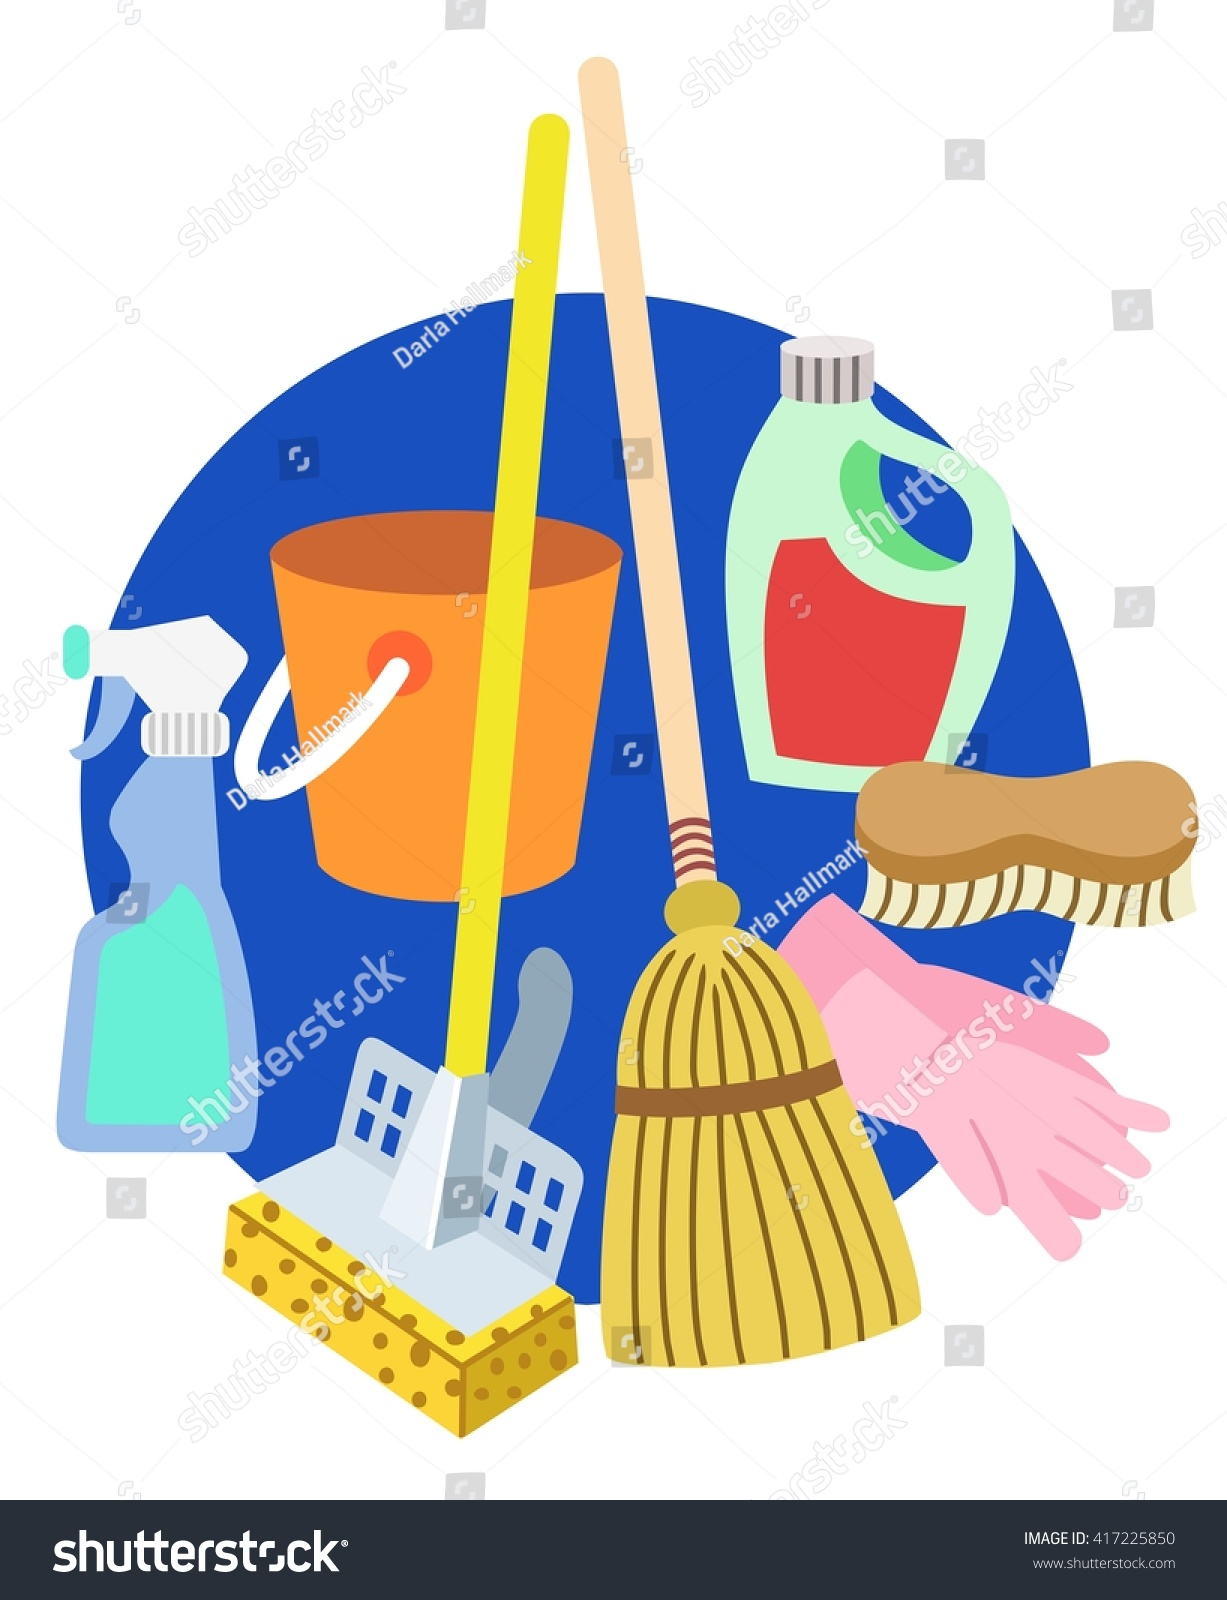 Cleaning Supplies Symbols Stock Vector Royalty Free 417225850